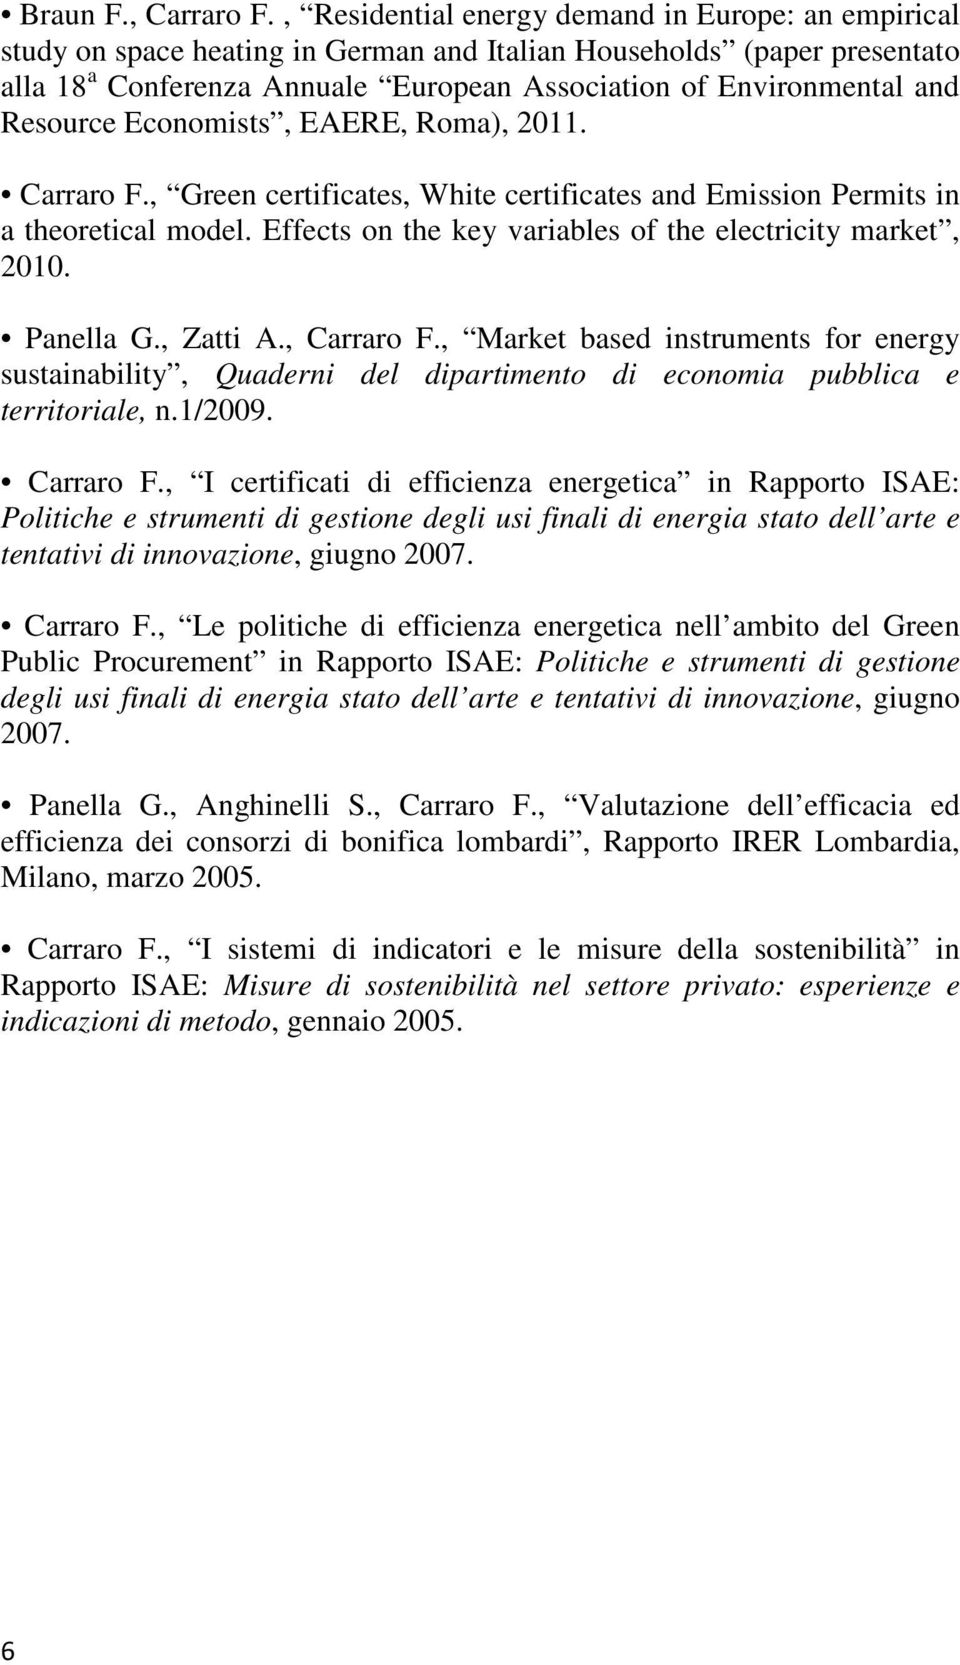 Resource Economists, EAERE, Roma), 2011. Carraro F., Green certificates, White certificates and Emission Permits in a theoretical model. Effects on the key variables of the electricity market, 2010.